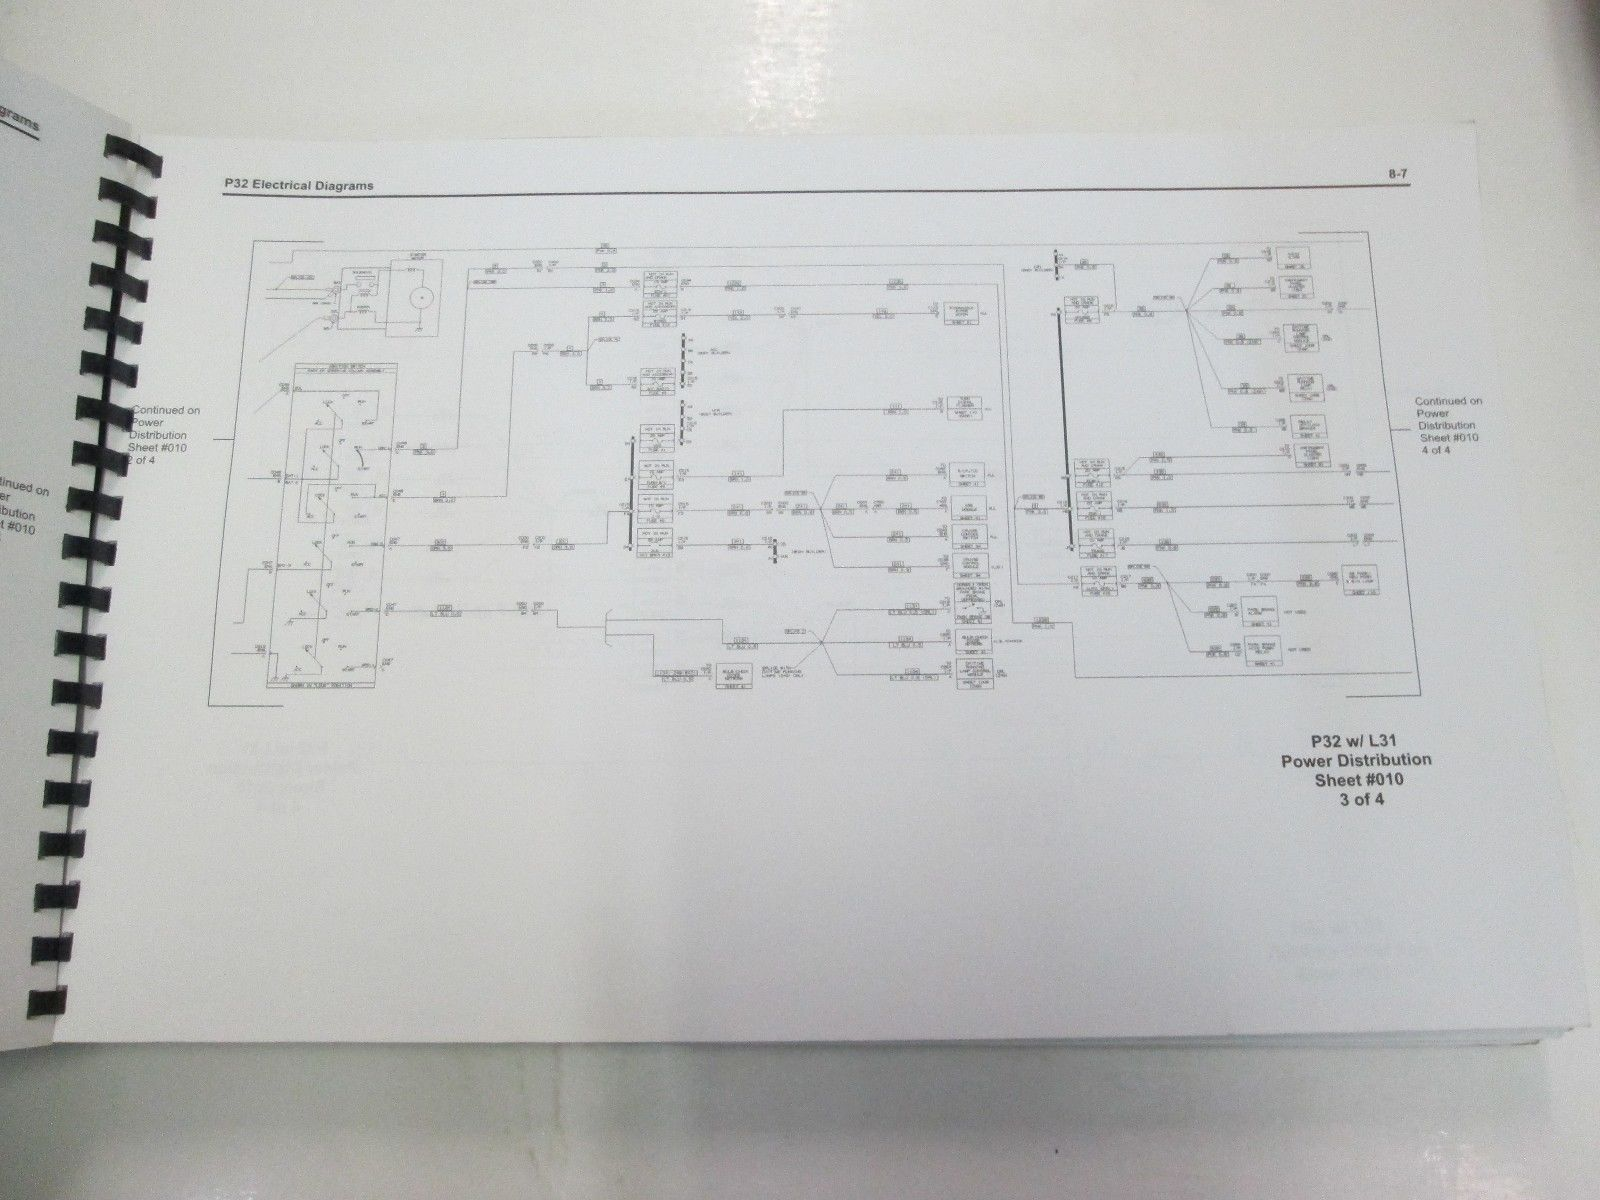 P 32 Workhorse Wiring Diagram Electrical Diagrams Ballast T5 Custom Chassis Service Manual And 50 Similar Items Ez Go Textron